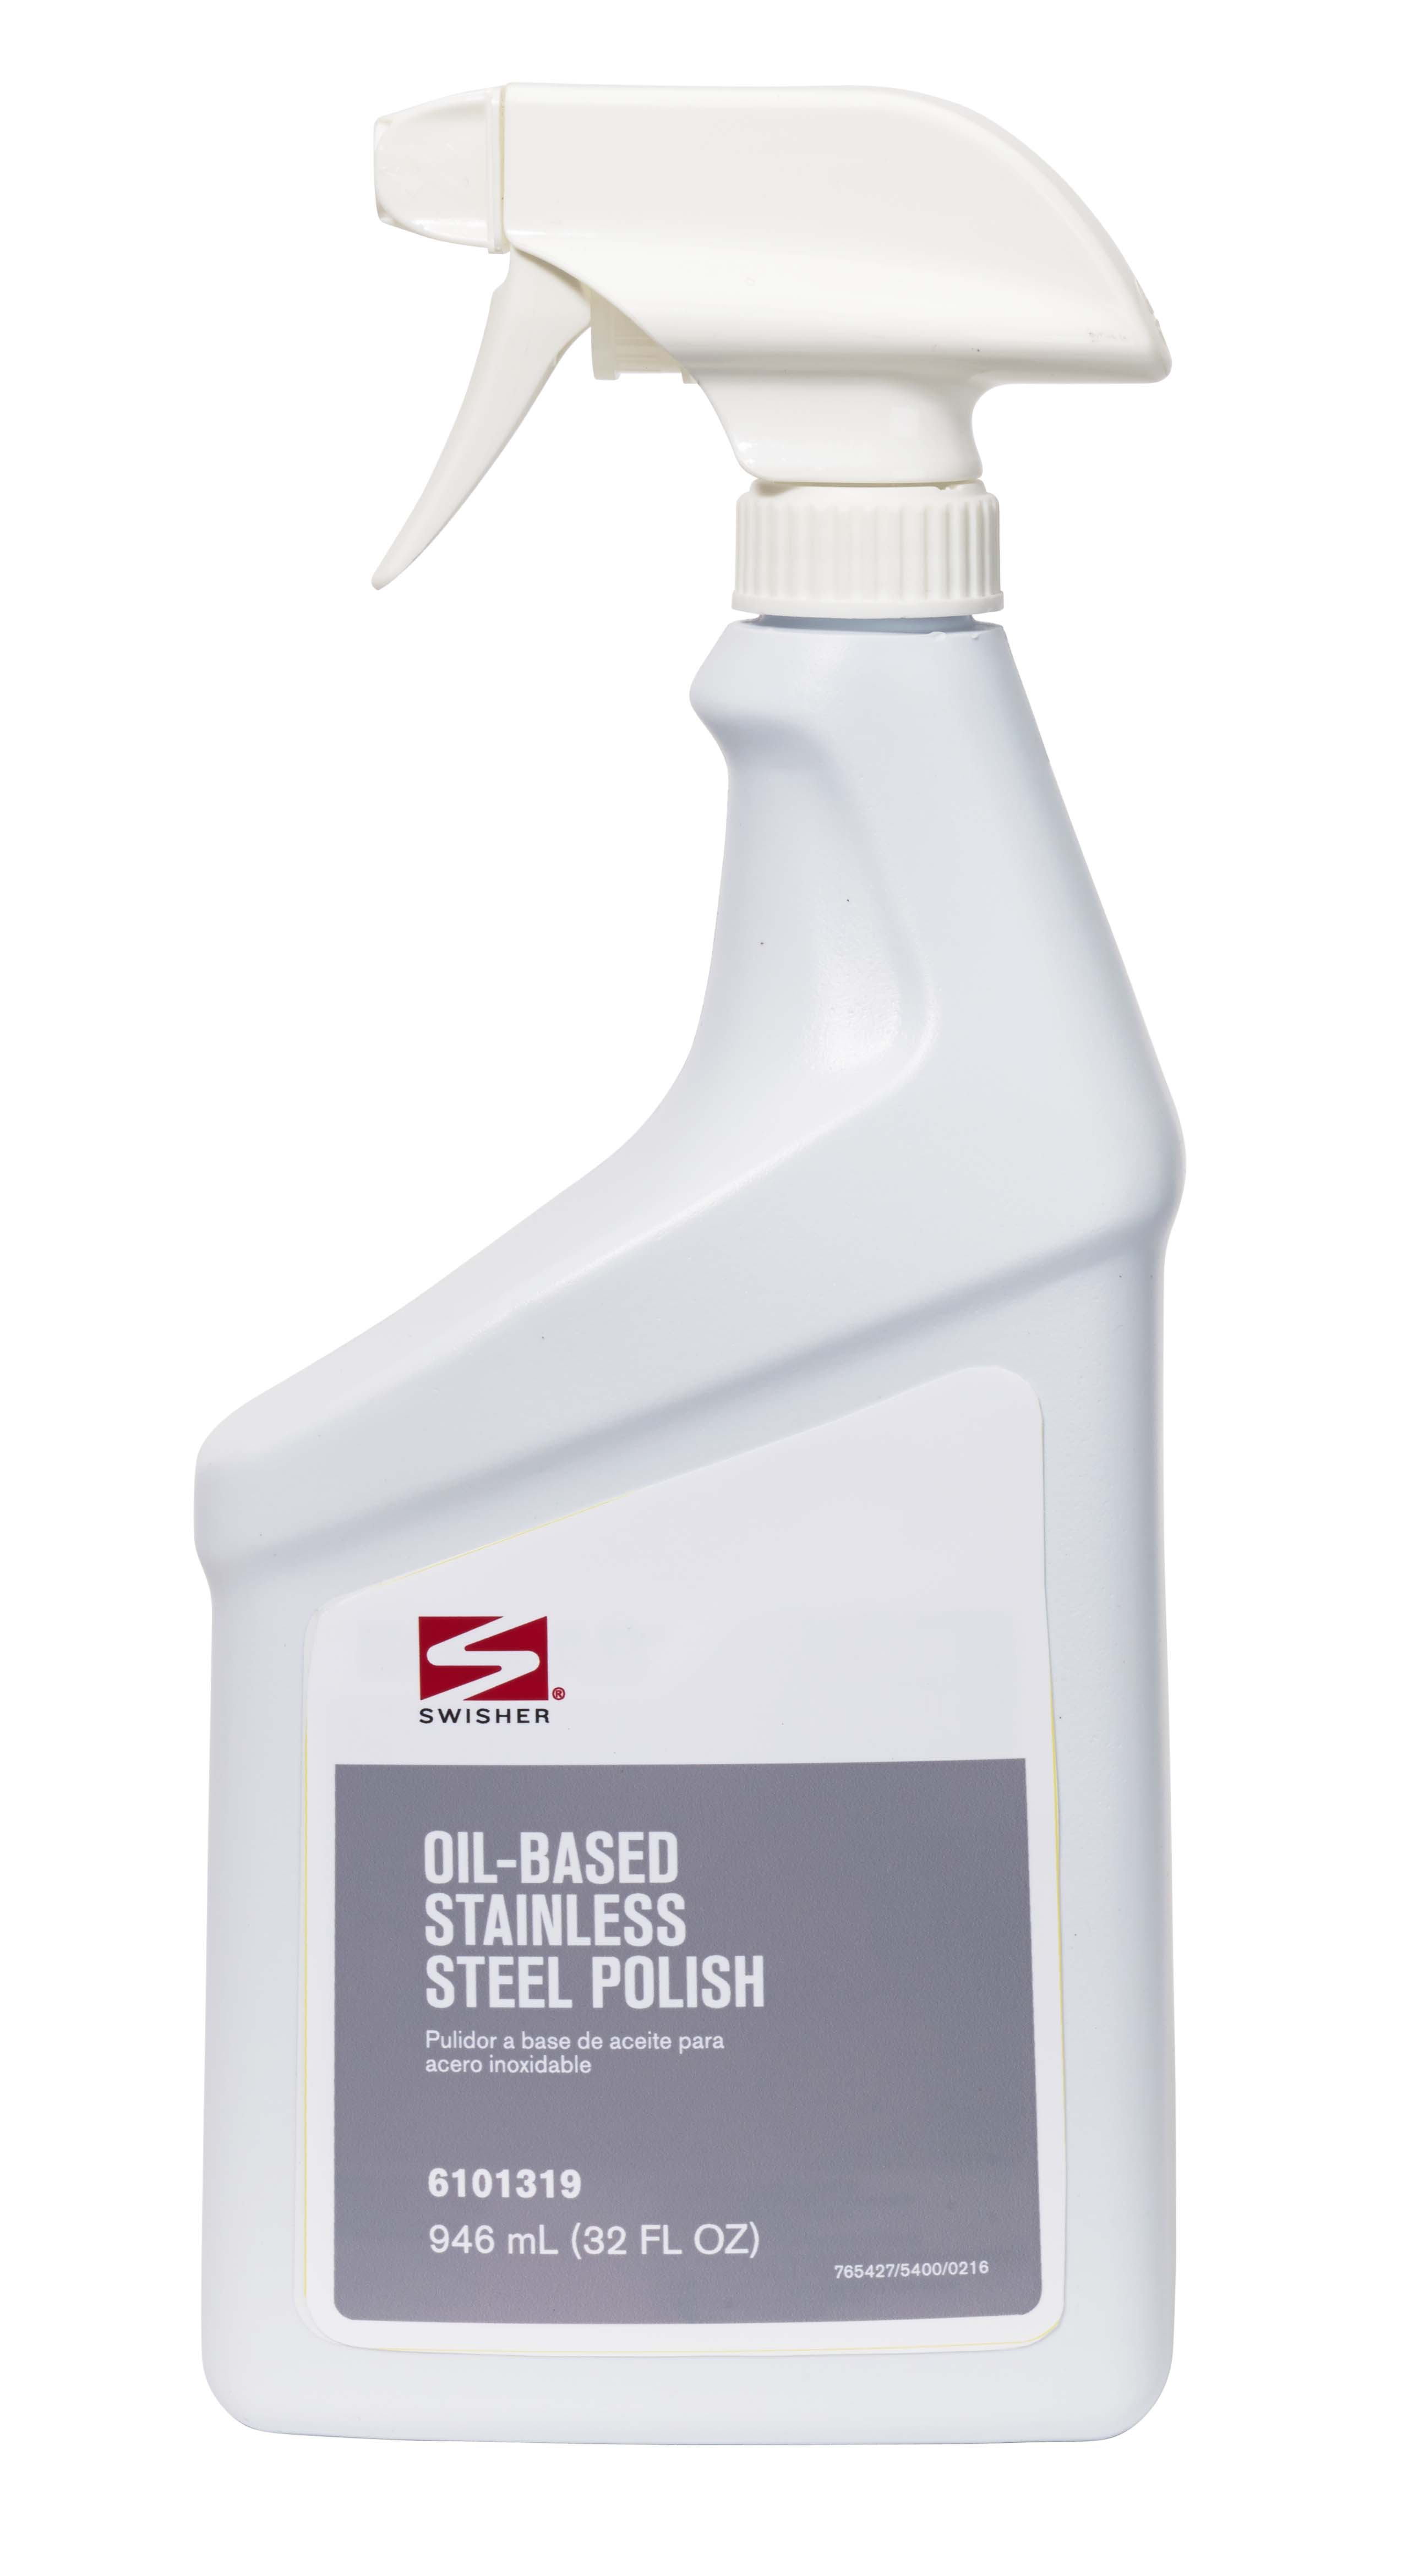 Swisher Oil Based Stainless Steel Polish